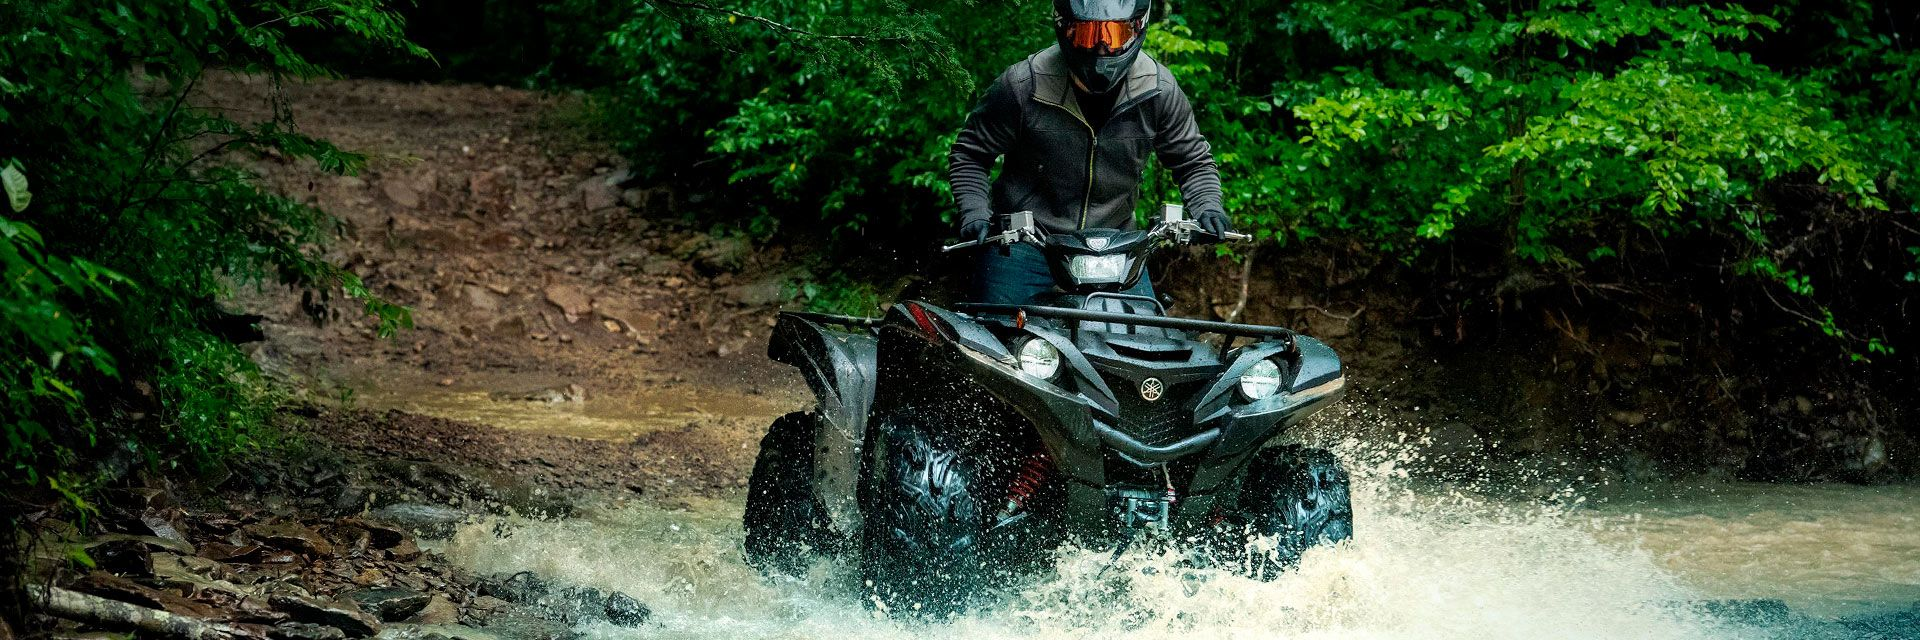 Yamaha Grizzly | Track n Trail